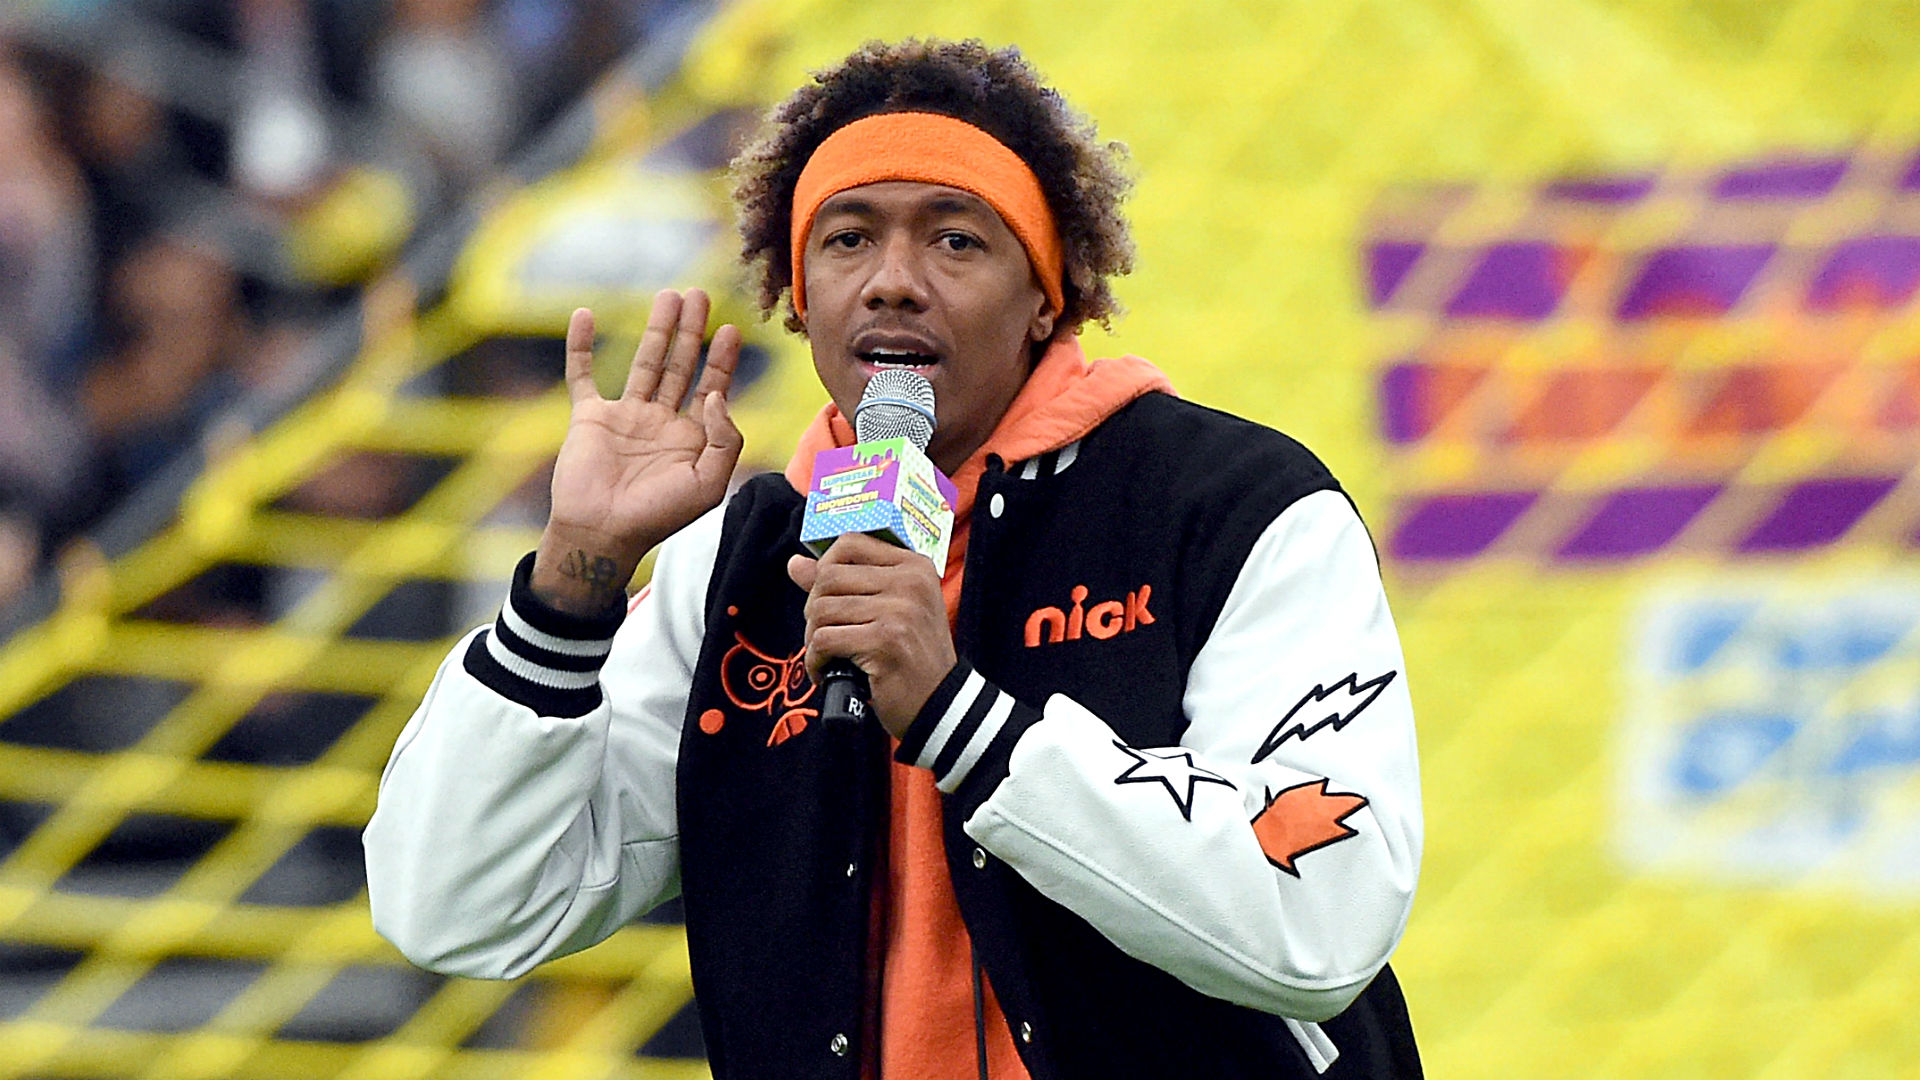 Nick Cannon Denounces Charges Now Panthers Fan Sporting News